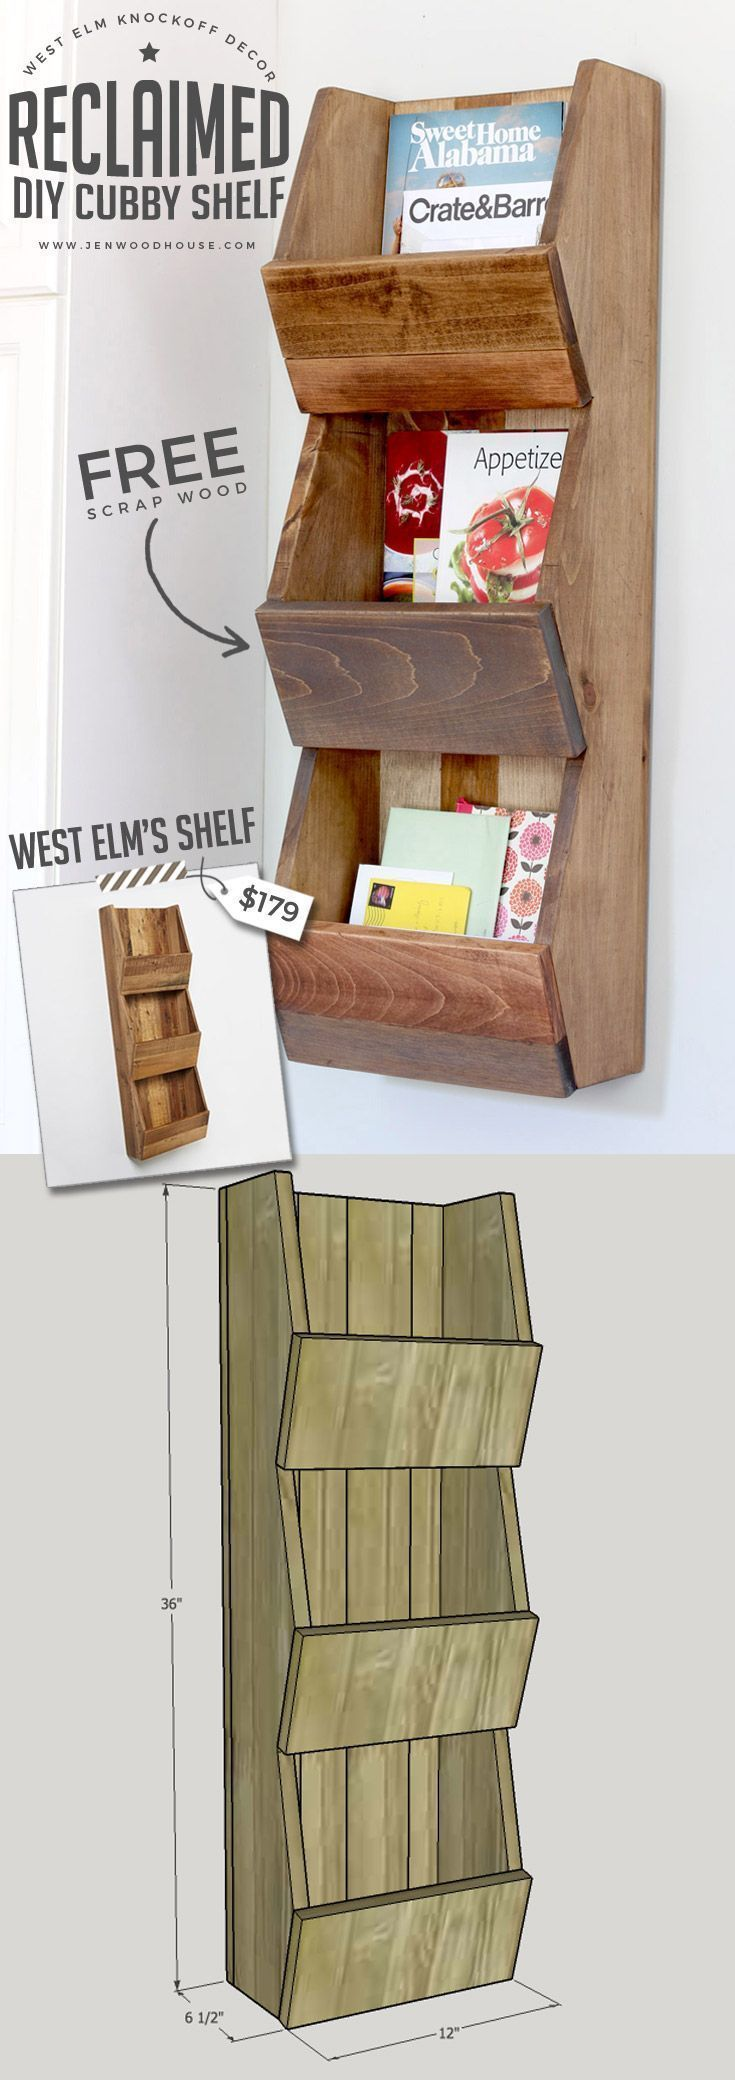 LOVE THIS! Tutorial on how to build a DIY West Elm knockoff cubby shelf. Could be used for potatoes/onions etc